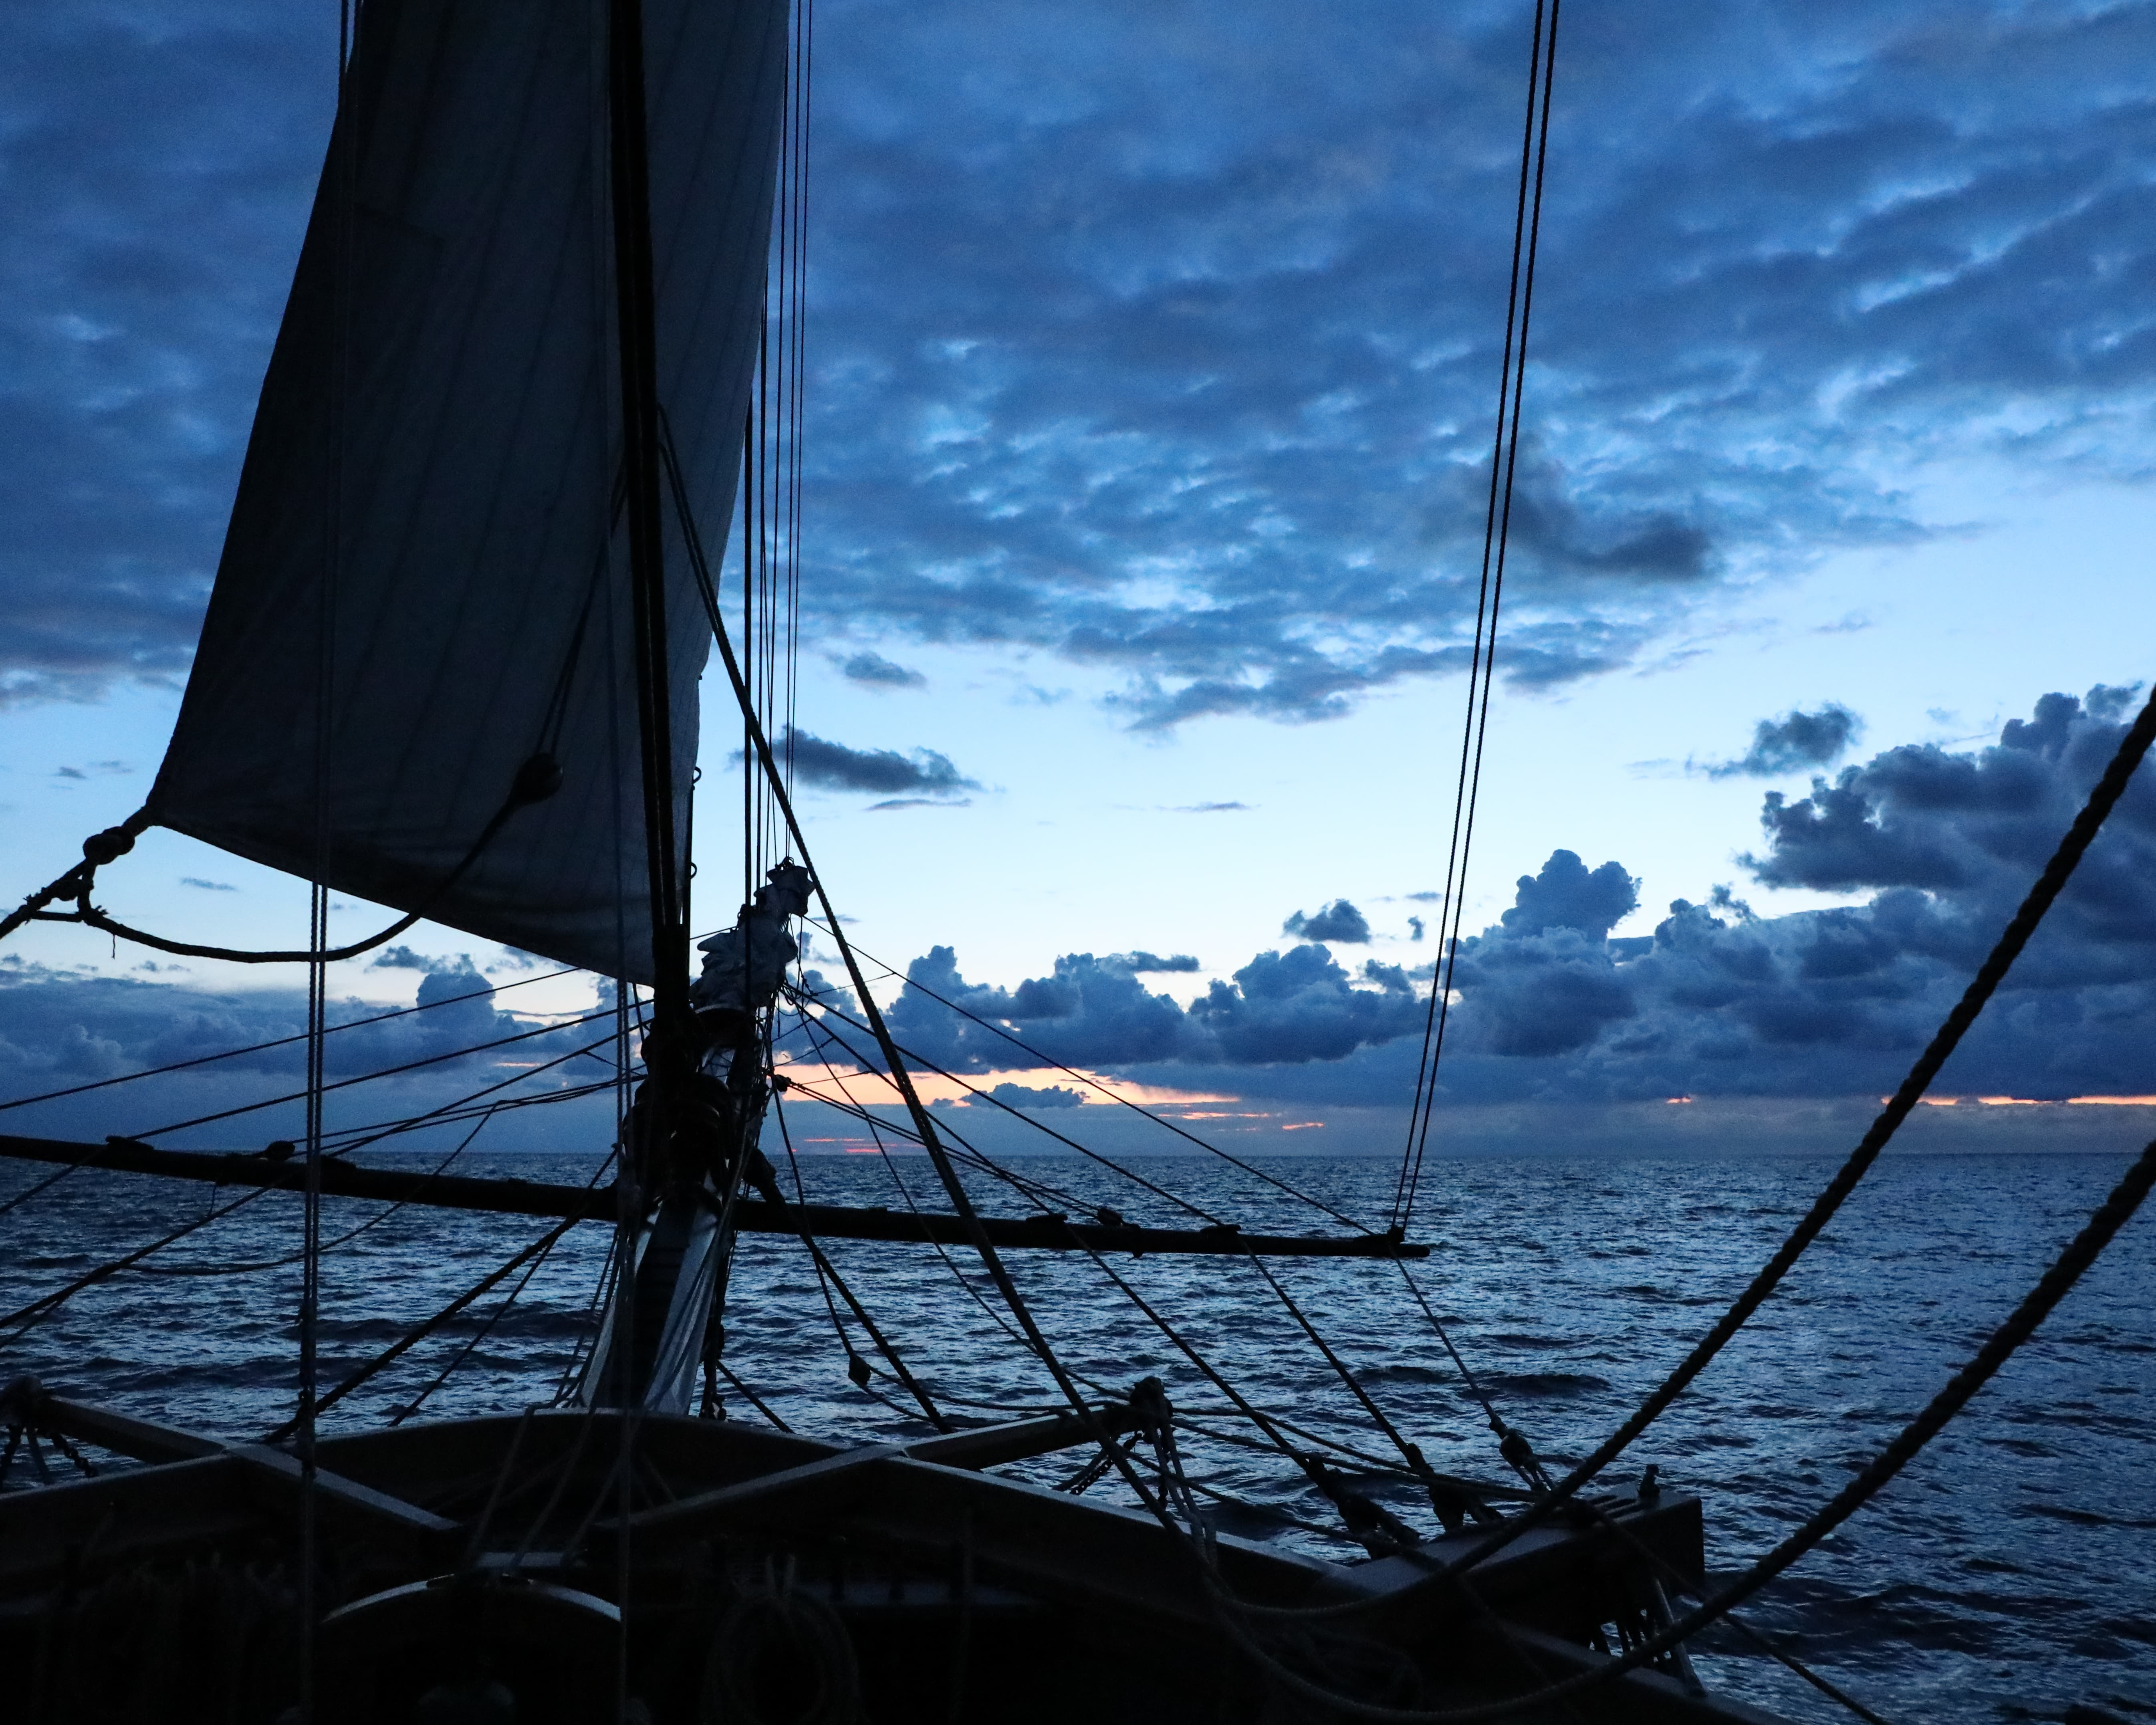 image shows a ship's prow in profile against a seascape at twilight